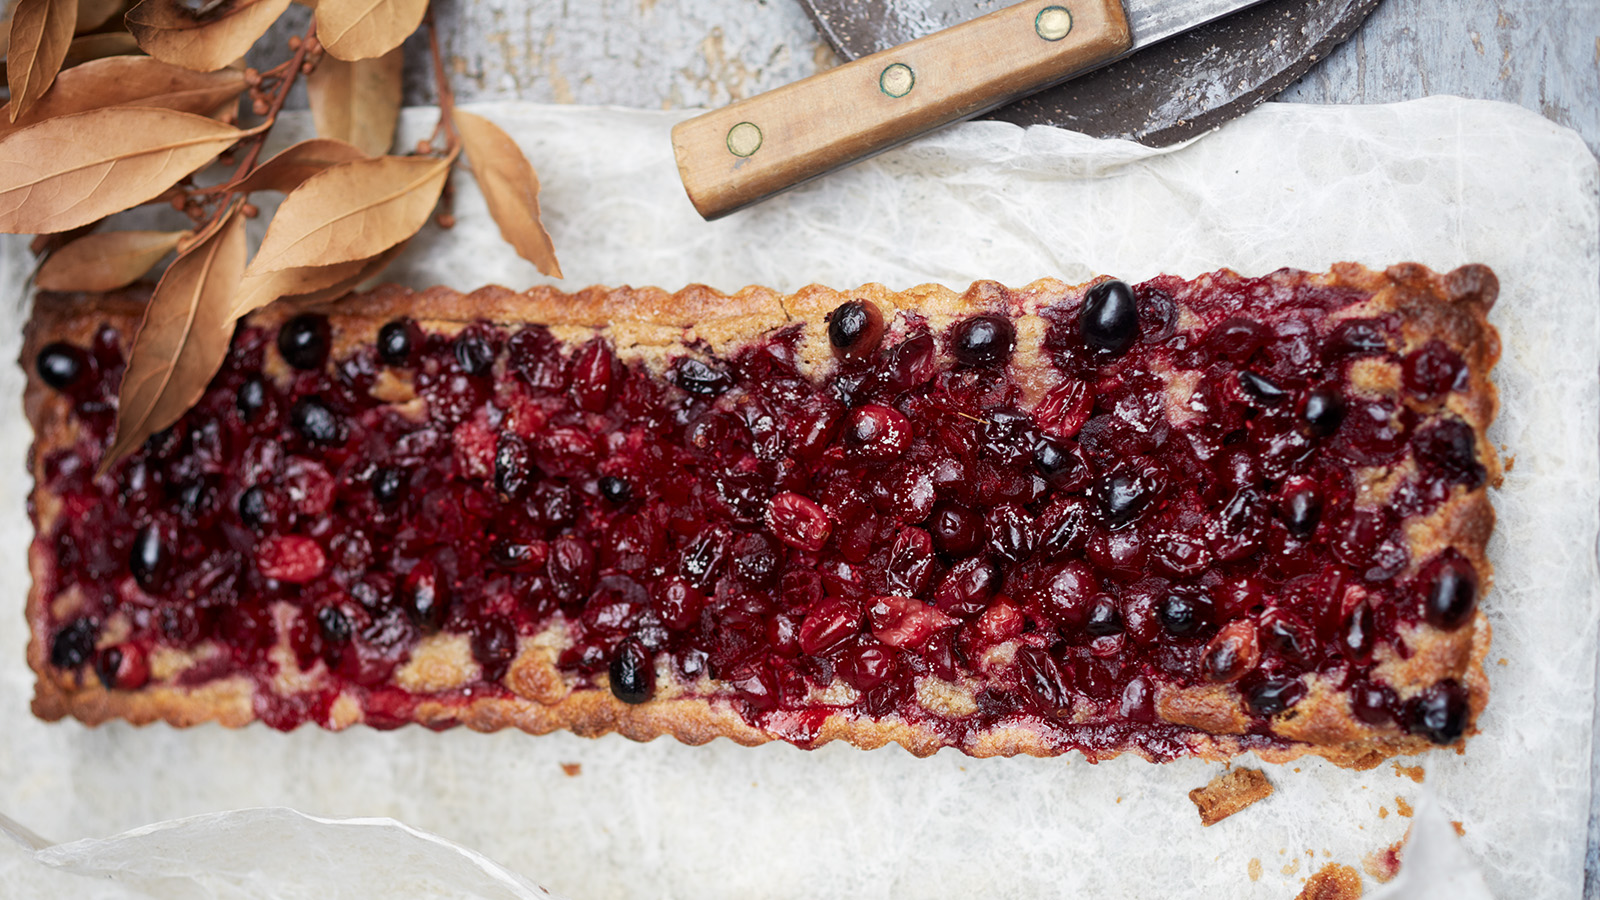 Cranberry-Walnut Tart with Buckwheat Crust